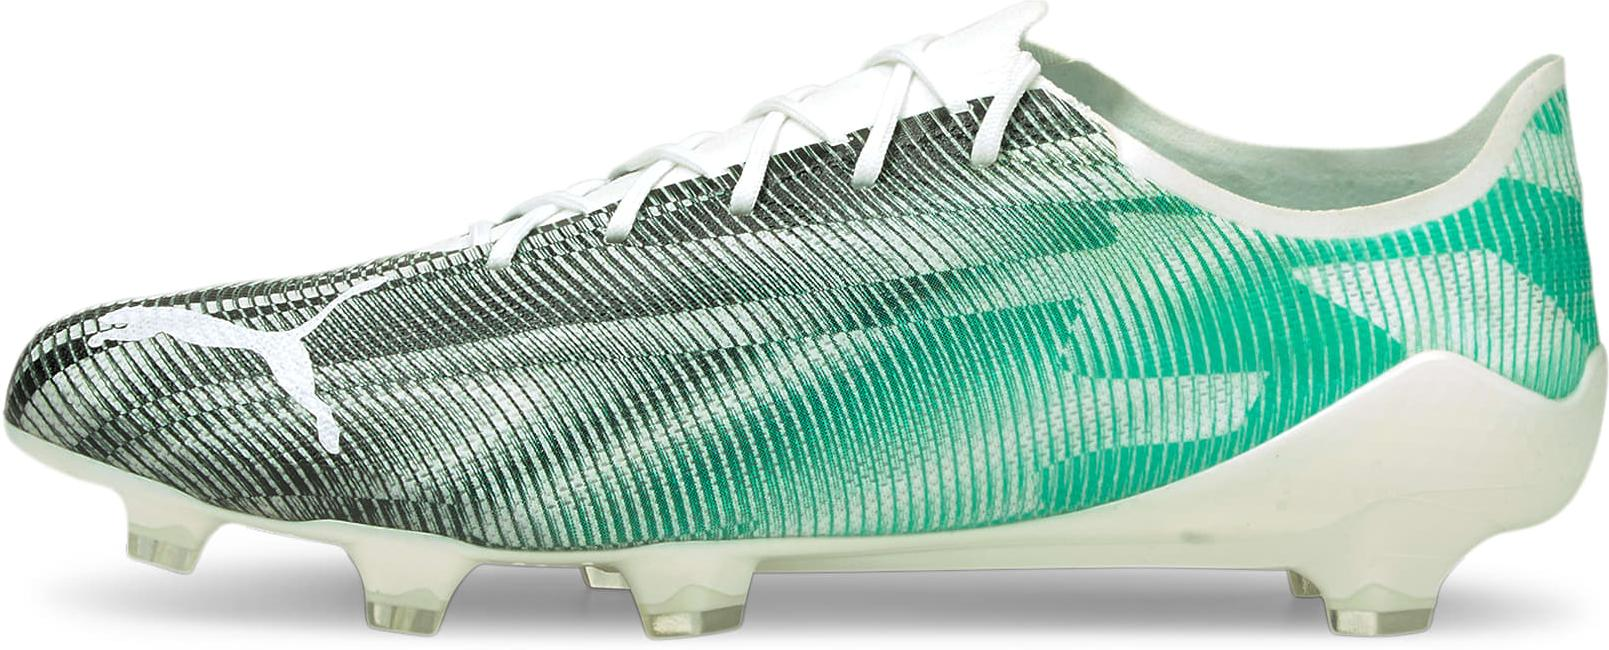 Chaussures de football Puma ULTRA SL 21 FG